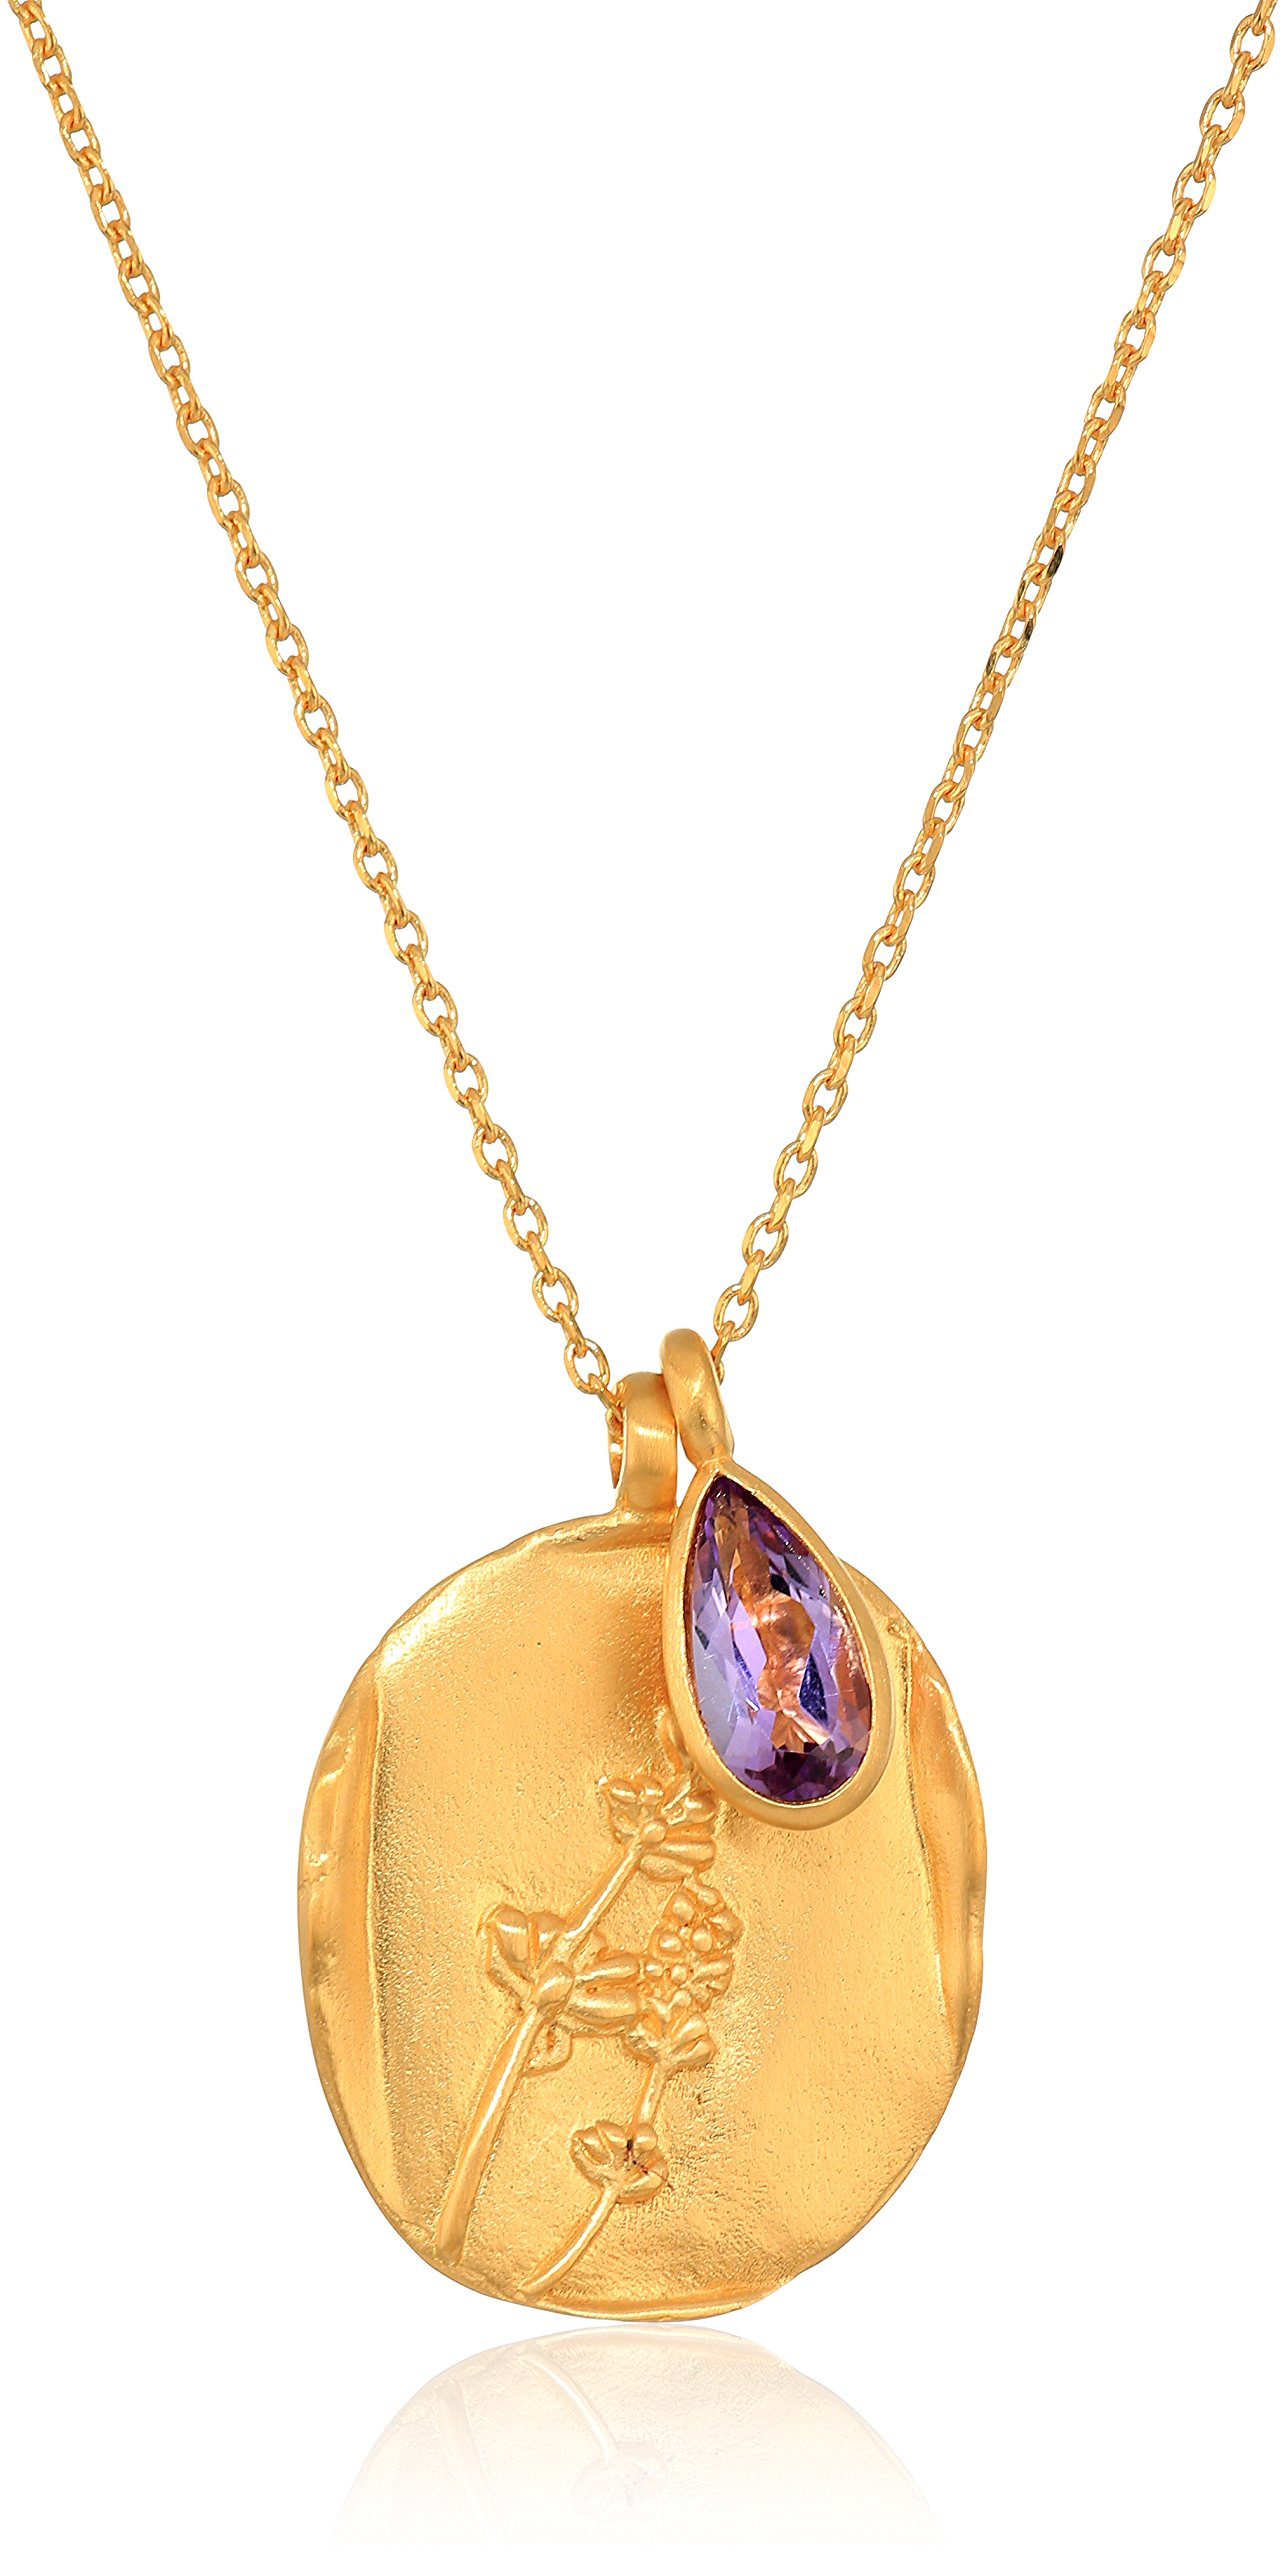 Satya Jewelry Amethyst Gold Pendant 30-Inch Chain Necklace, 30''